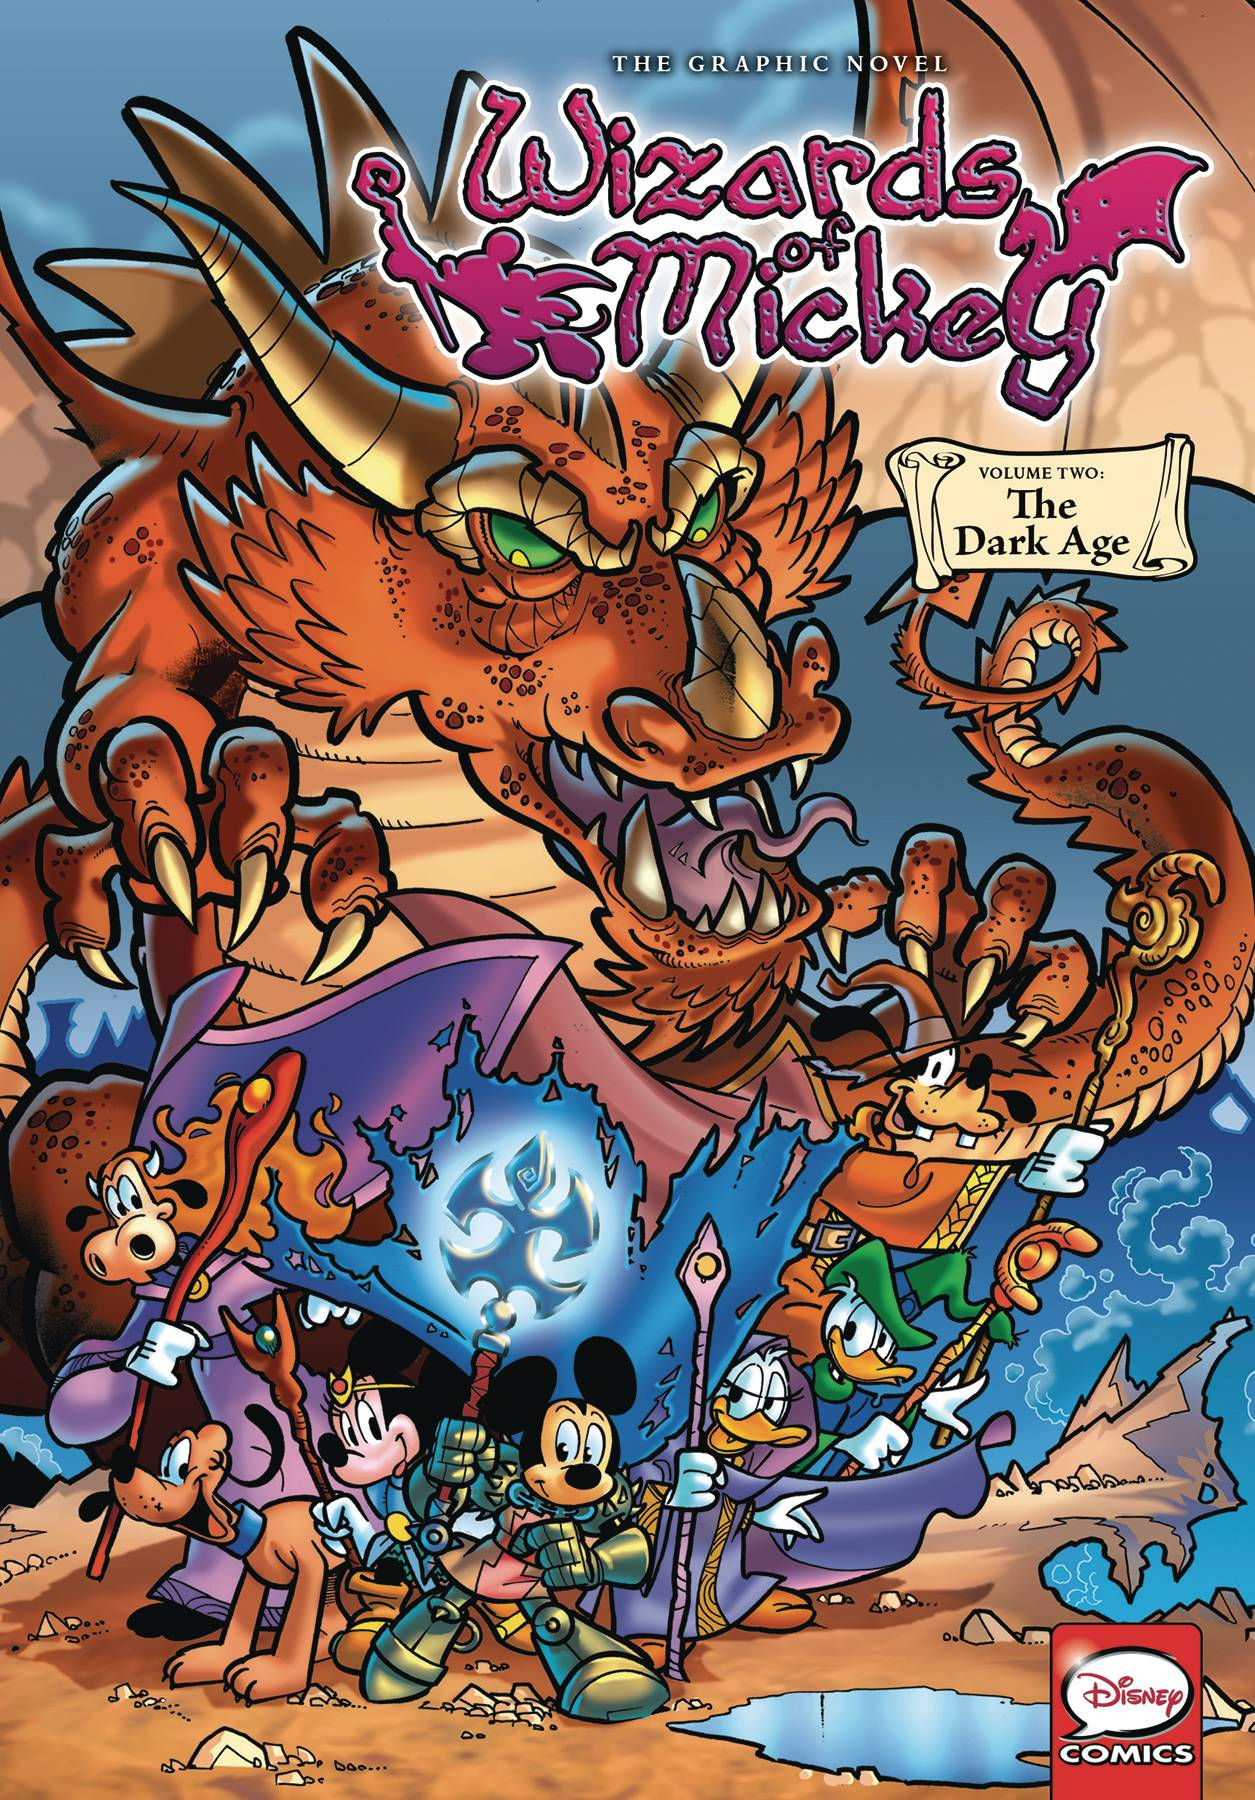 WIZARDS OF MICKEY GN VOL 02